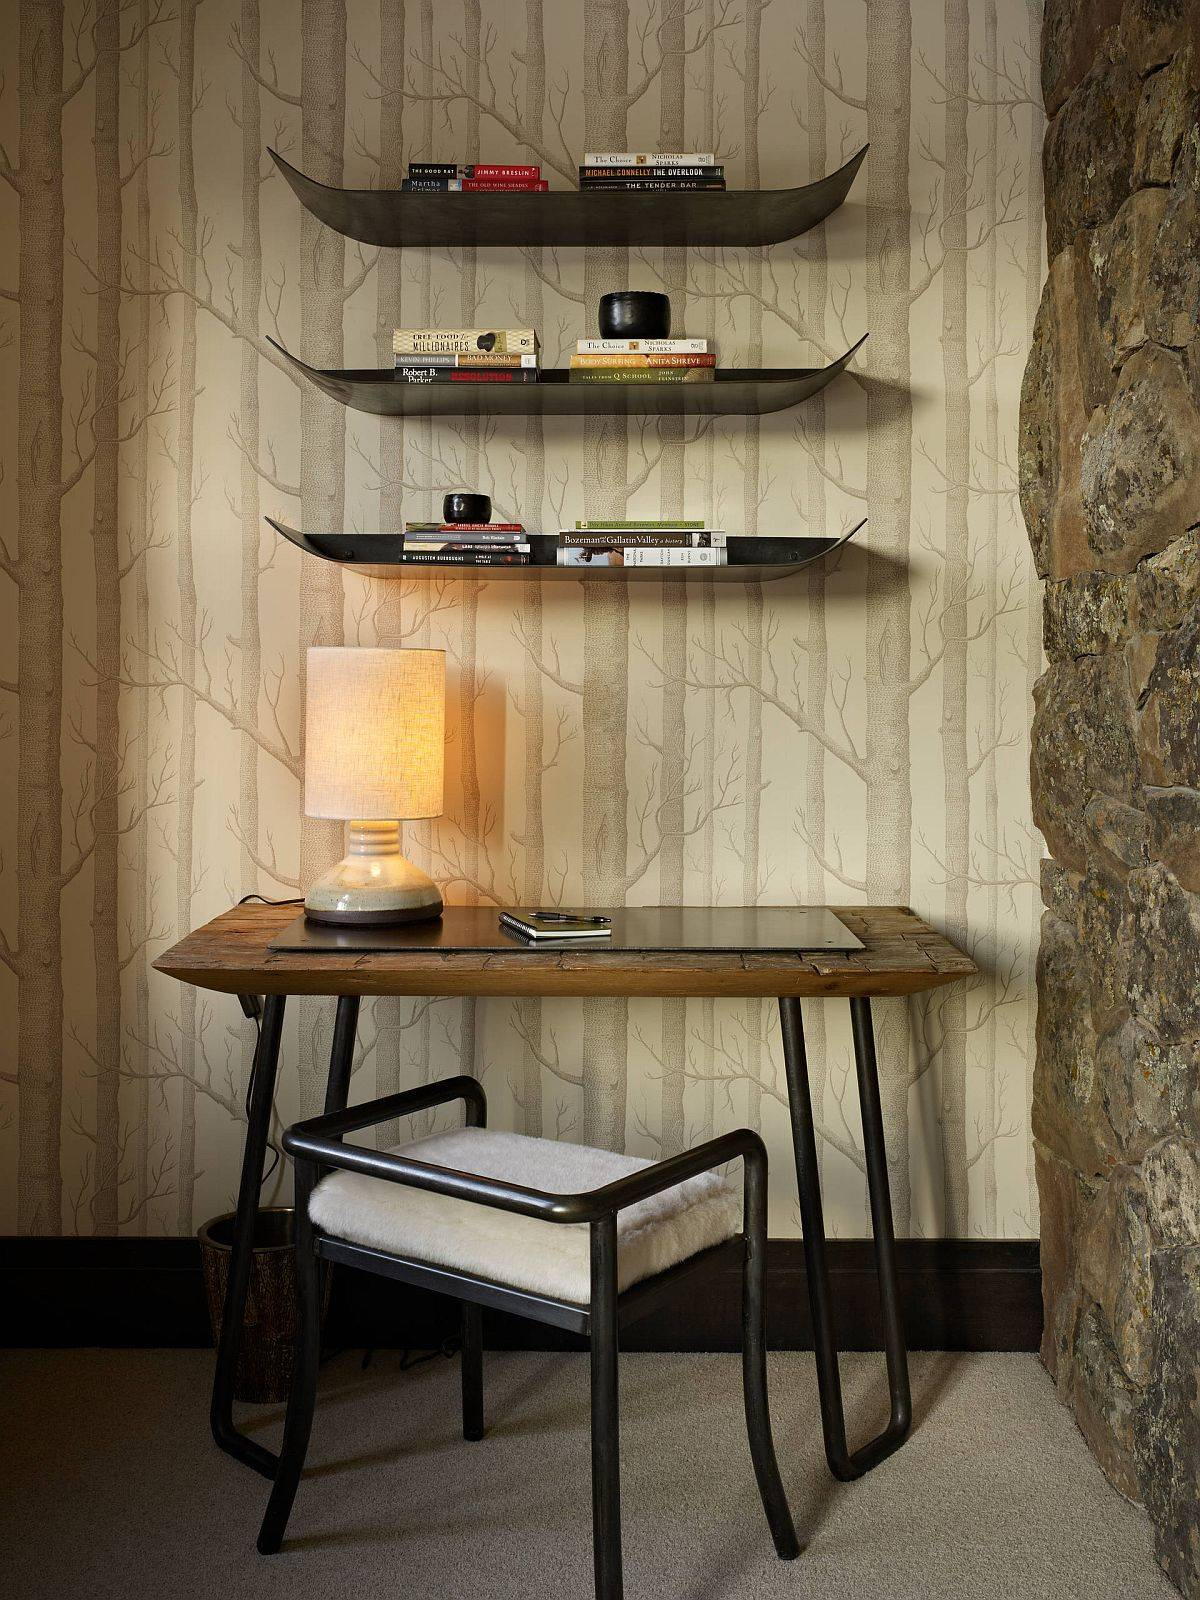 Woods wallpaper is a modern icon that is just perfect for the small rustic home office